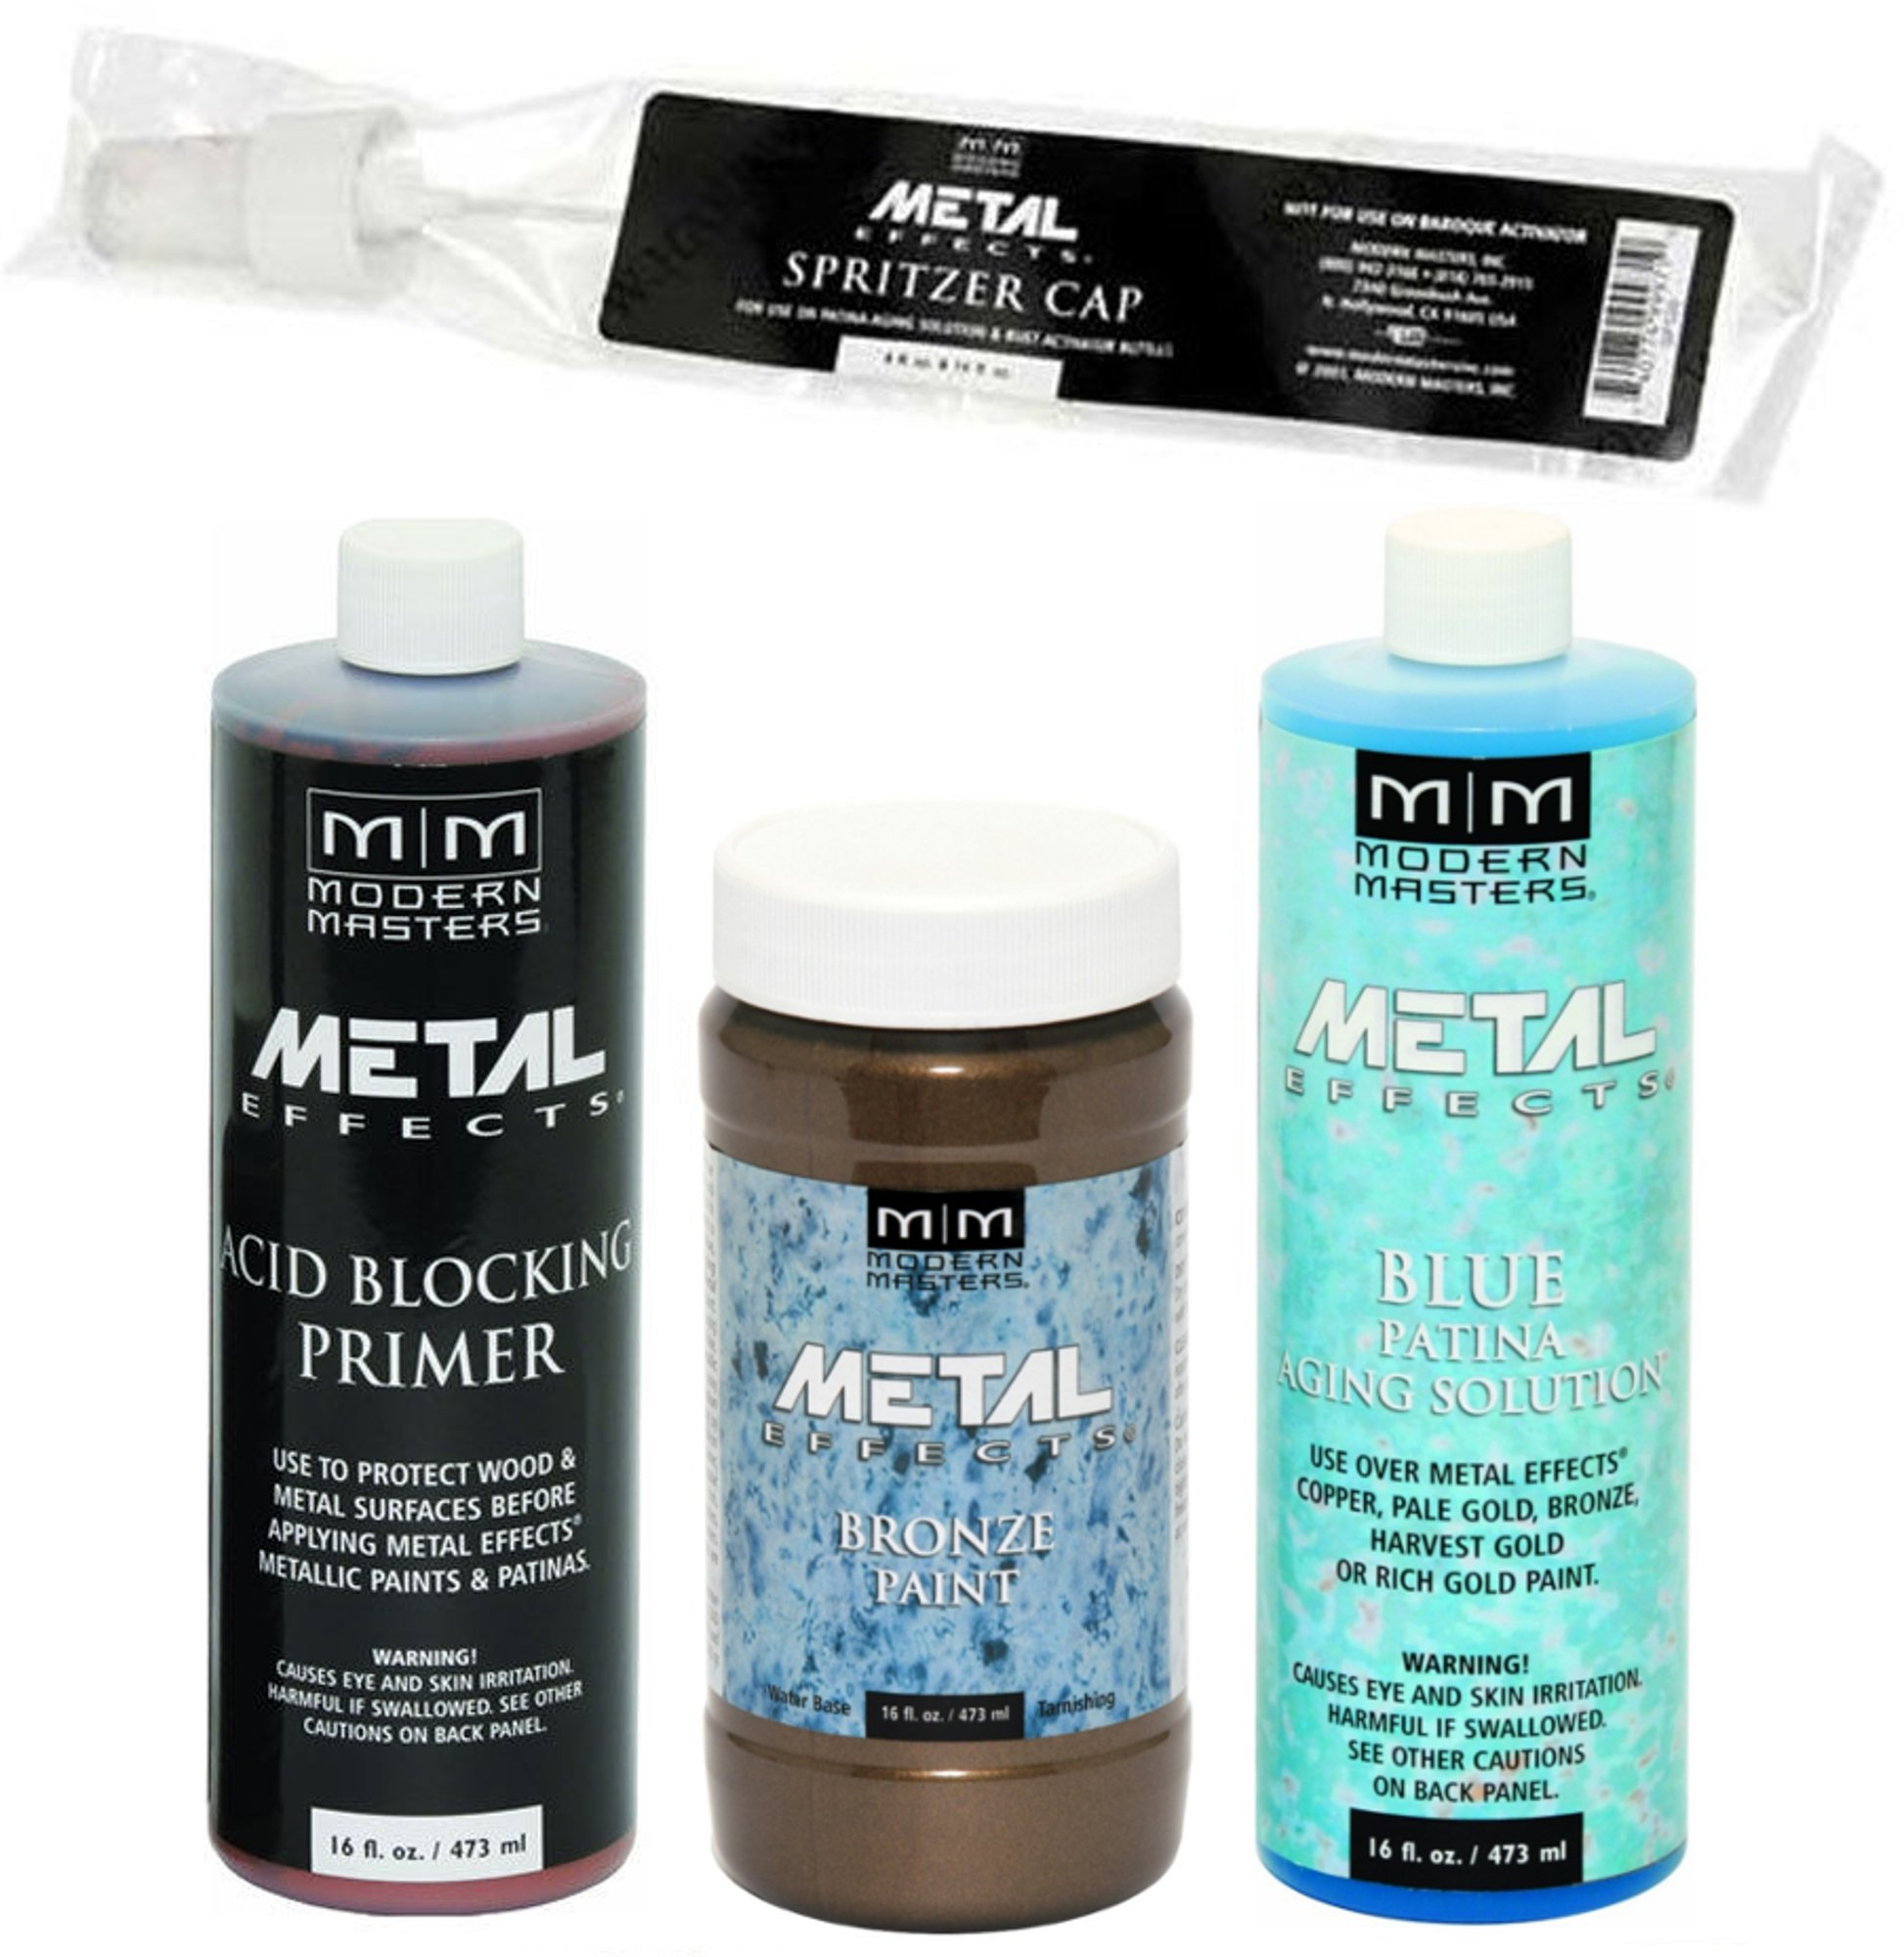 Modern Masters Metal Effects Bronze Paint and Blue Patina Kit (16-Ounce)